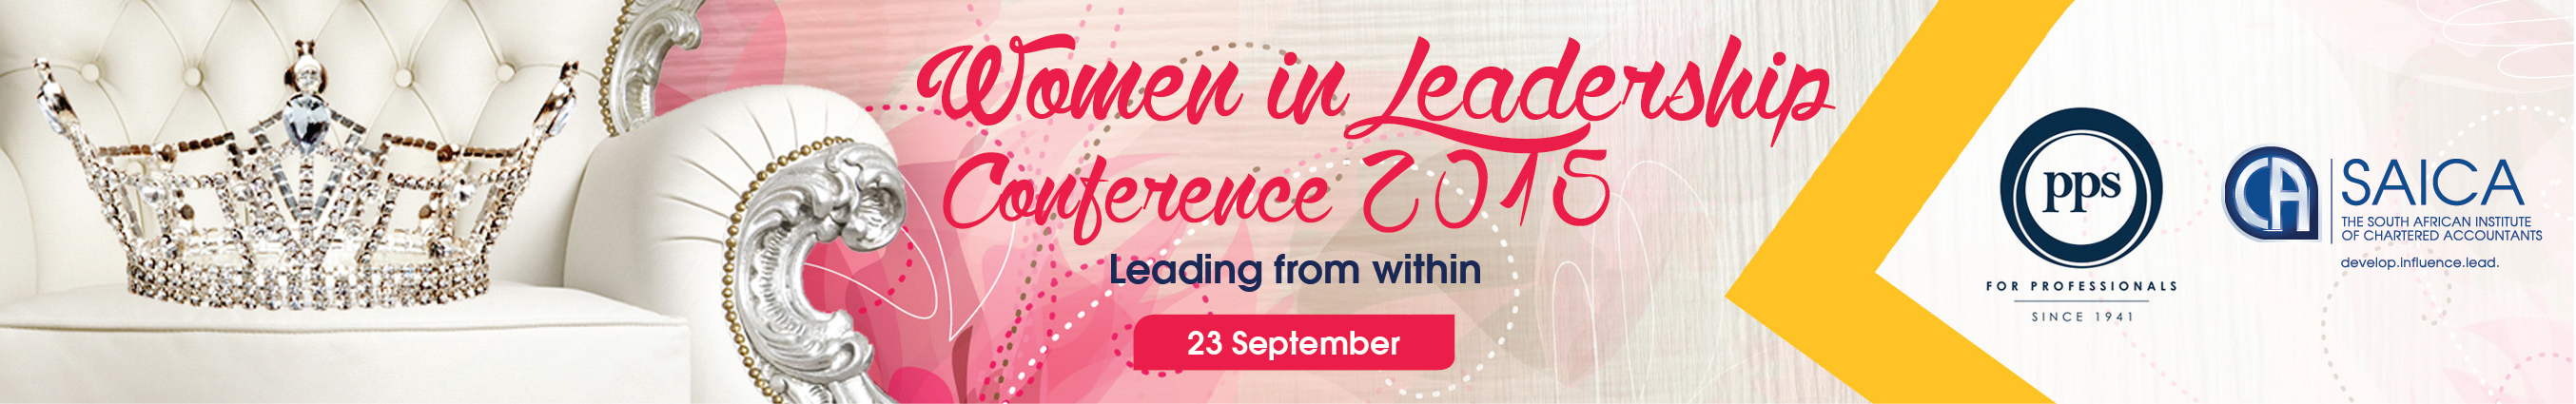 Women in Leadership 2015